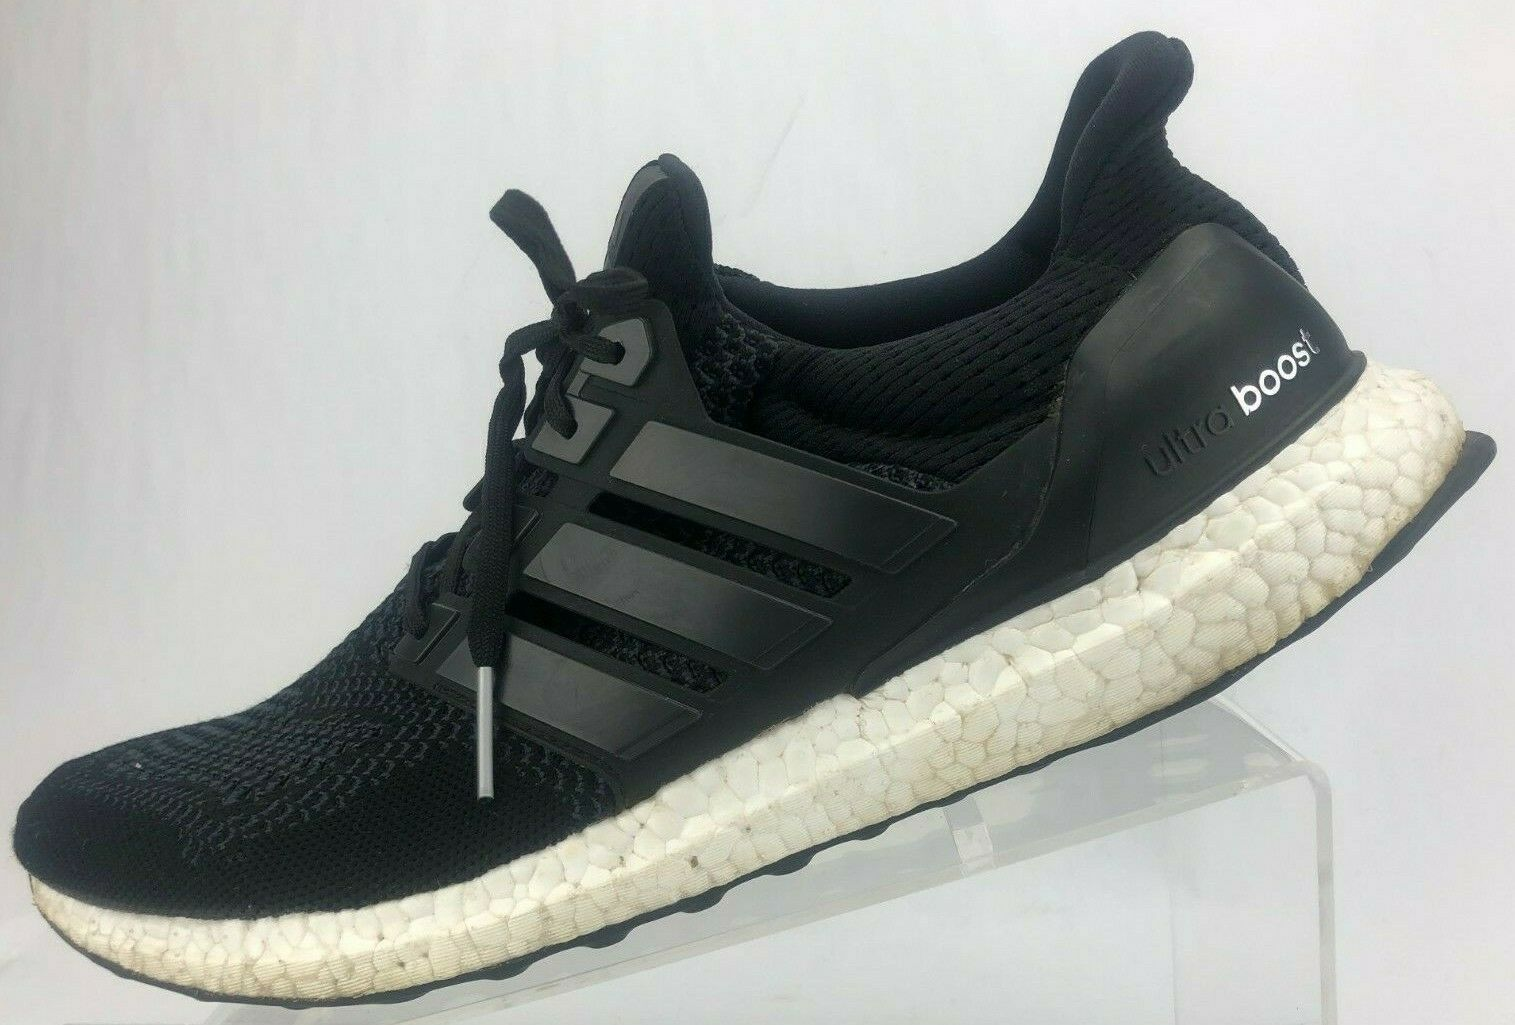 Adidas Ultra Boost Running shoes Black Training Athletic Sneakers Womens US 12.5